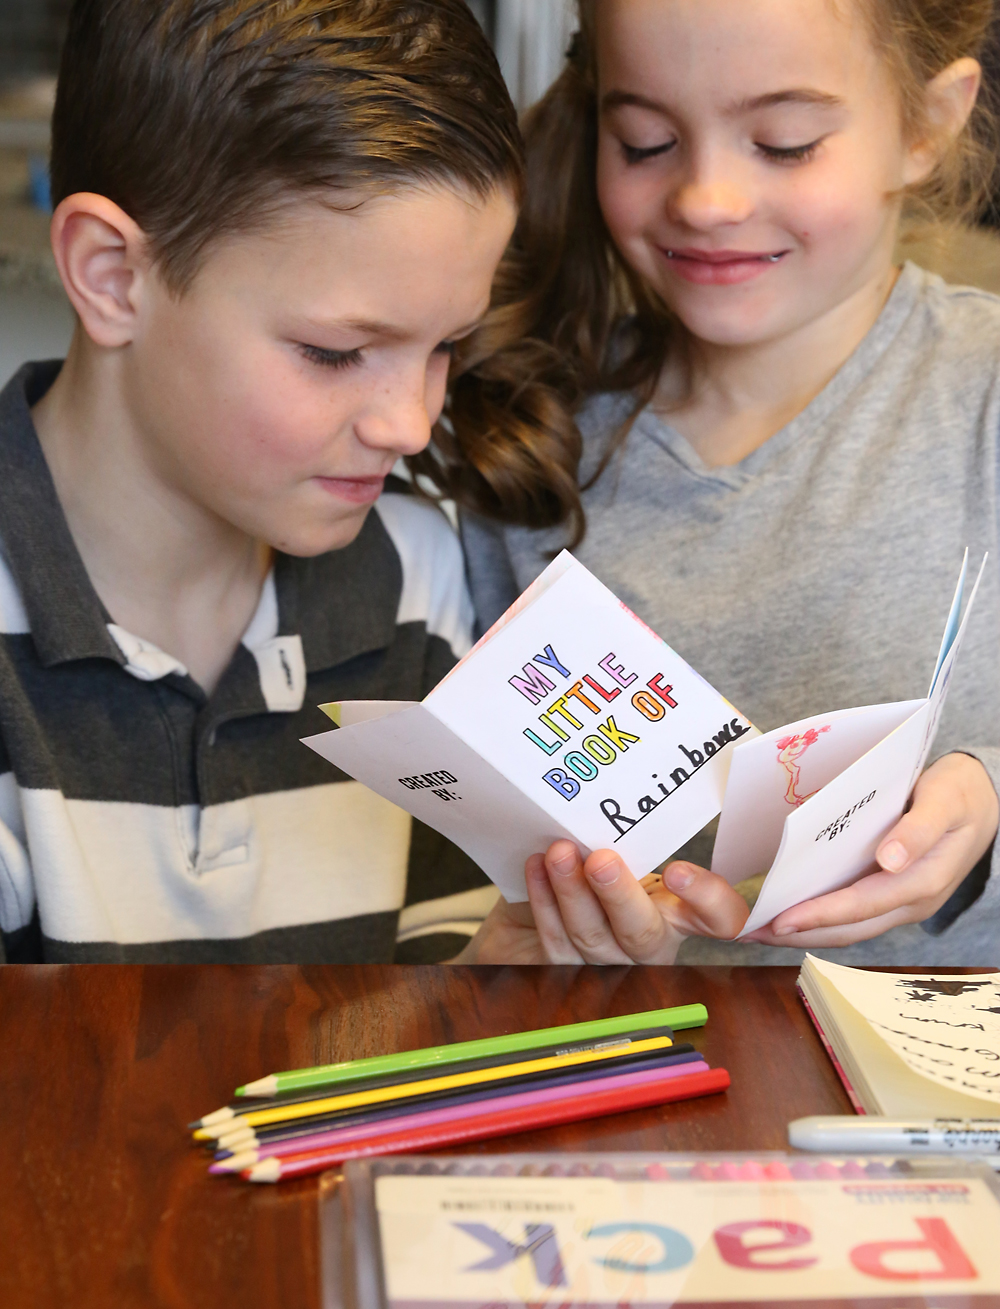 Kids look at little paper books they made